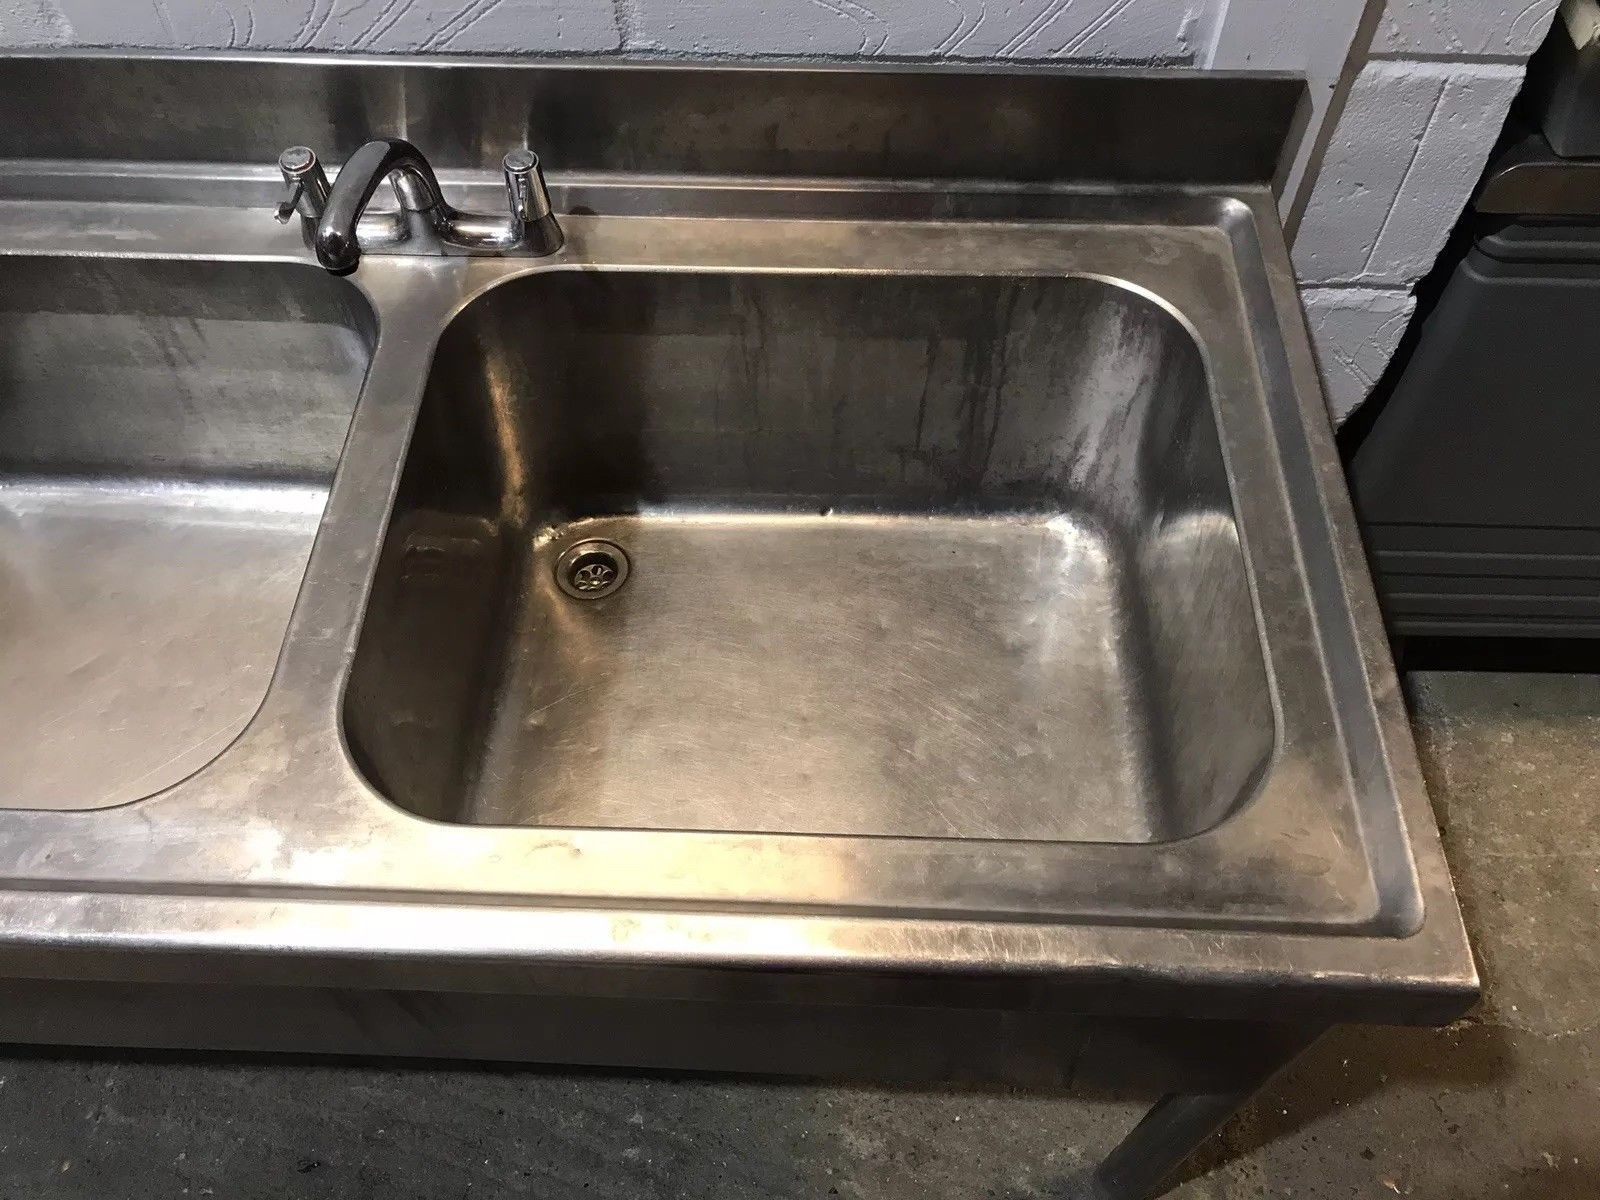 Stainless Steel Double Bowl Sink with Lefthand Drainer Upstand and Shelf - Image 4 of 6